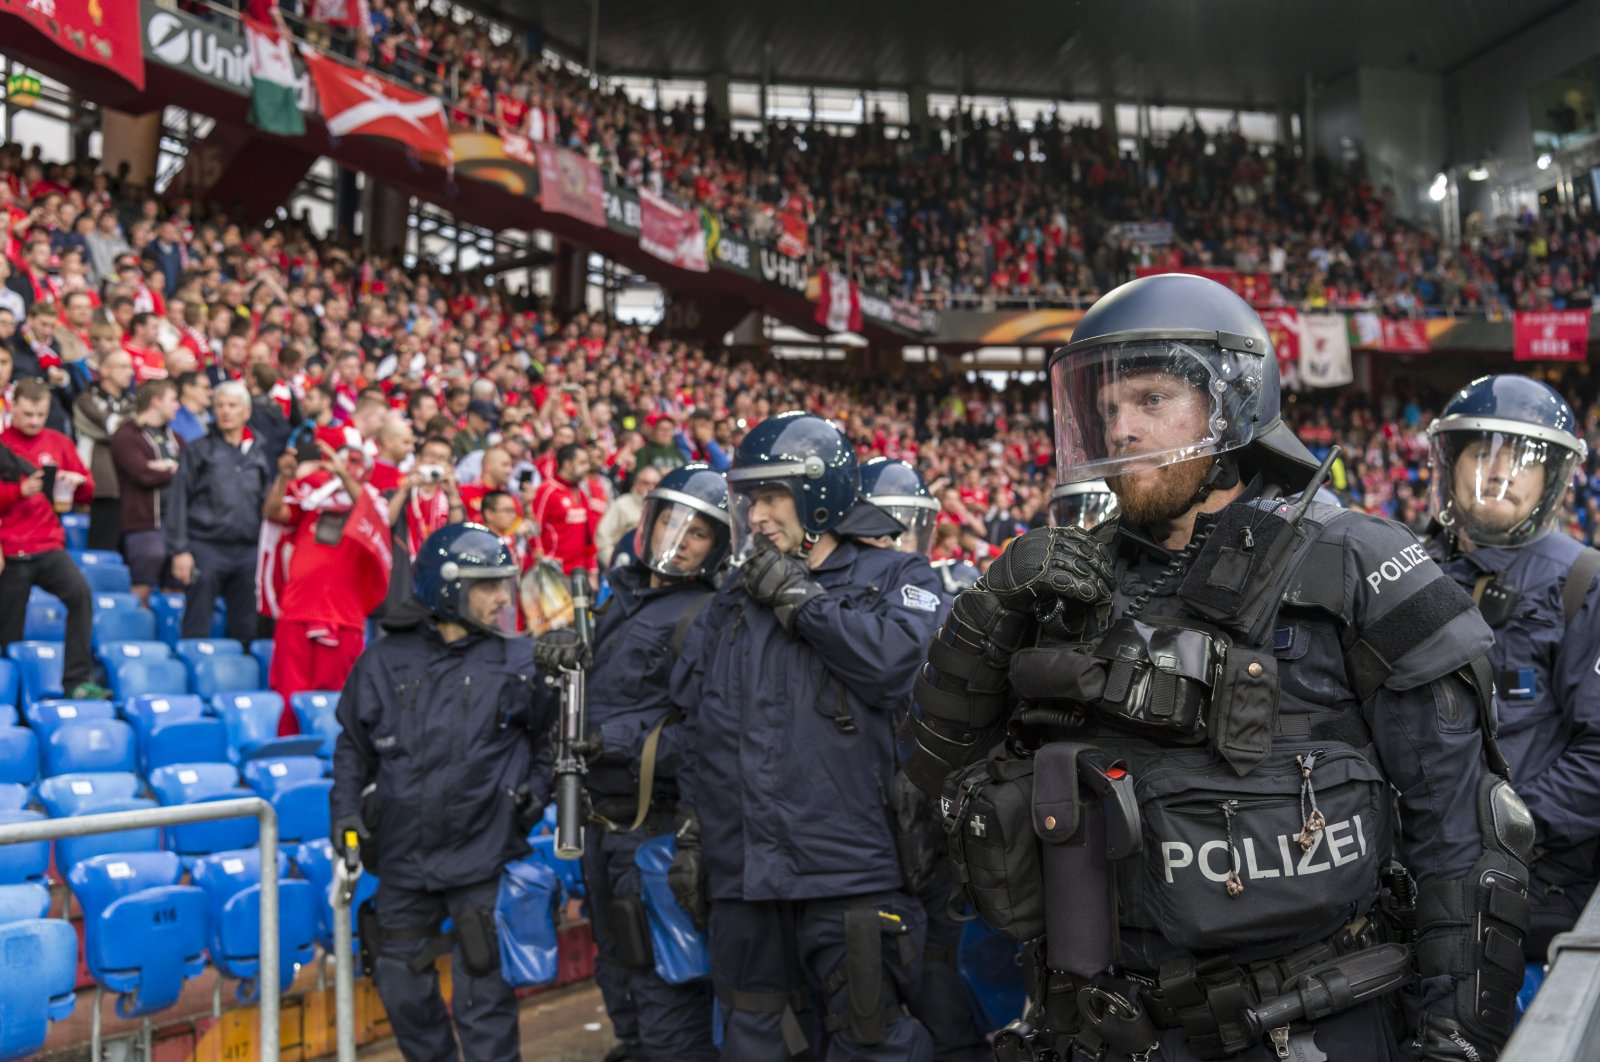 Riot police move into position ahead of the Europa League final between England's Liverpool FC and Spain's Sevilla Futbol Club at the St. Jakob-Park stadium in Basel, Switzerland, May 18, 2016. (AP Photo)